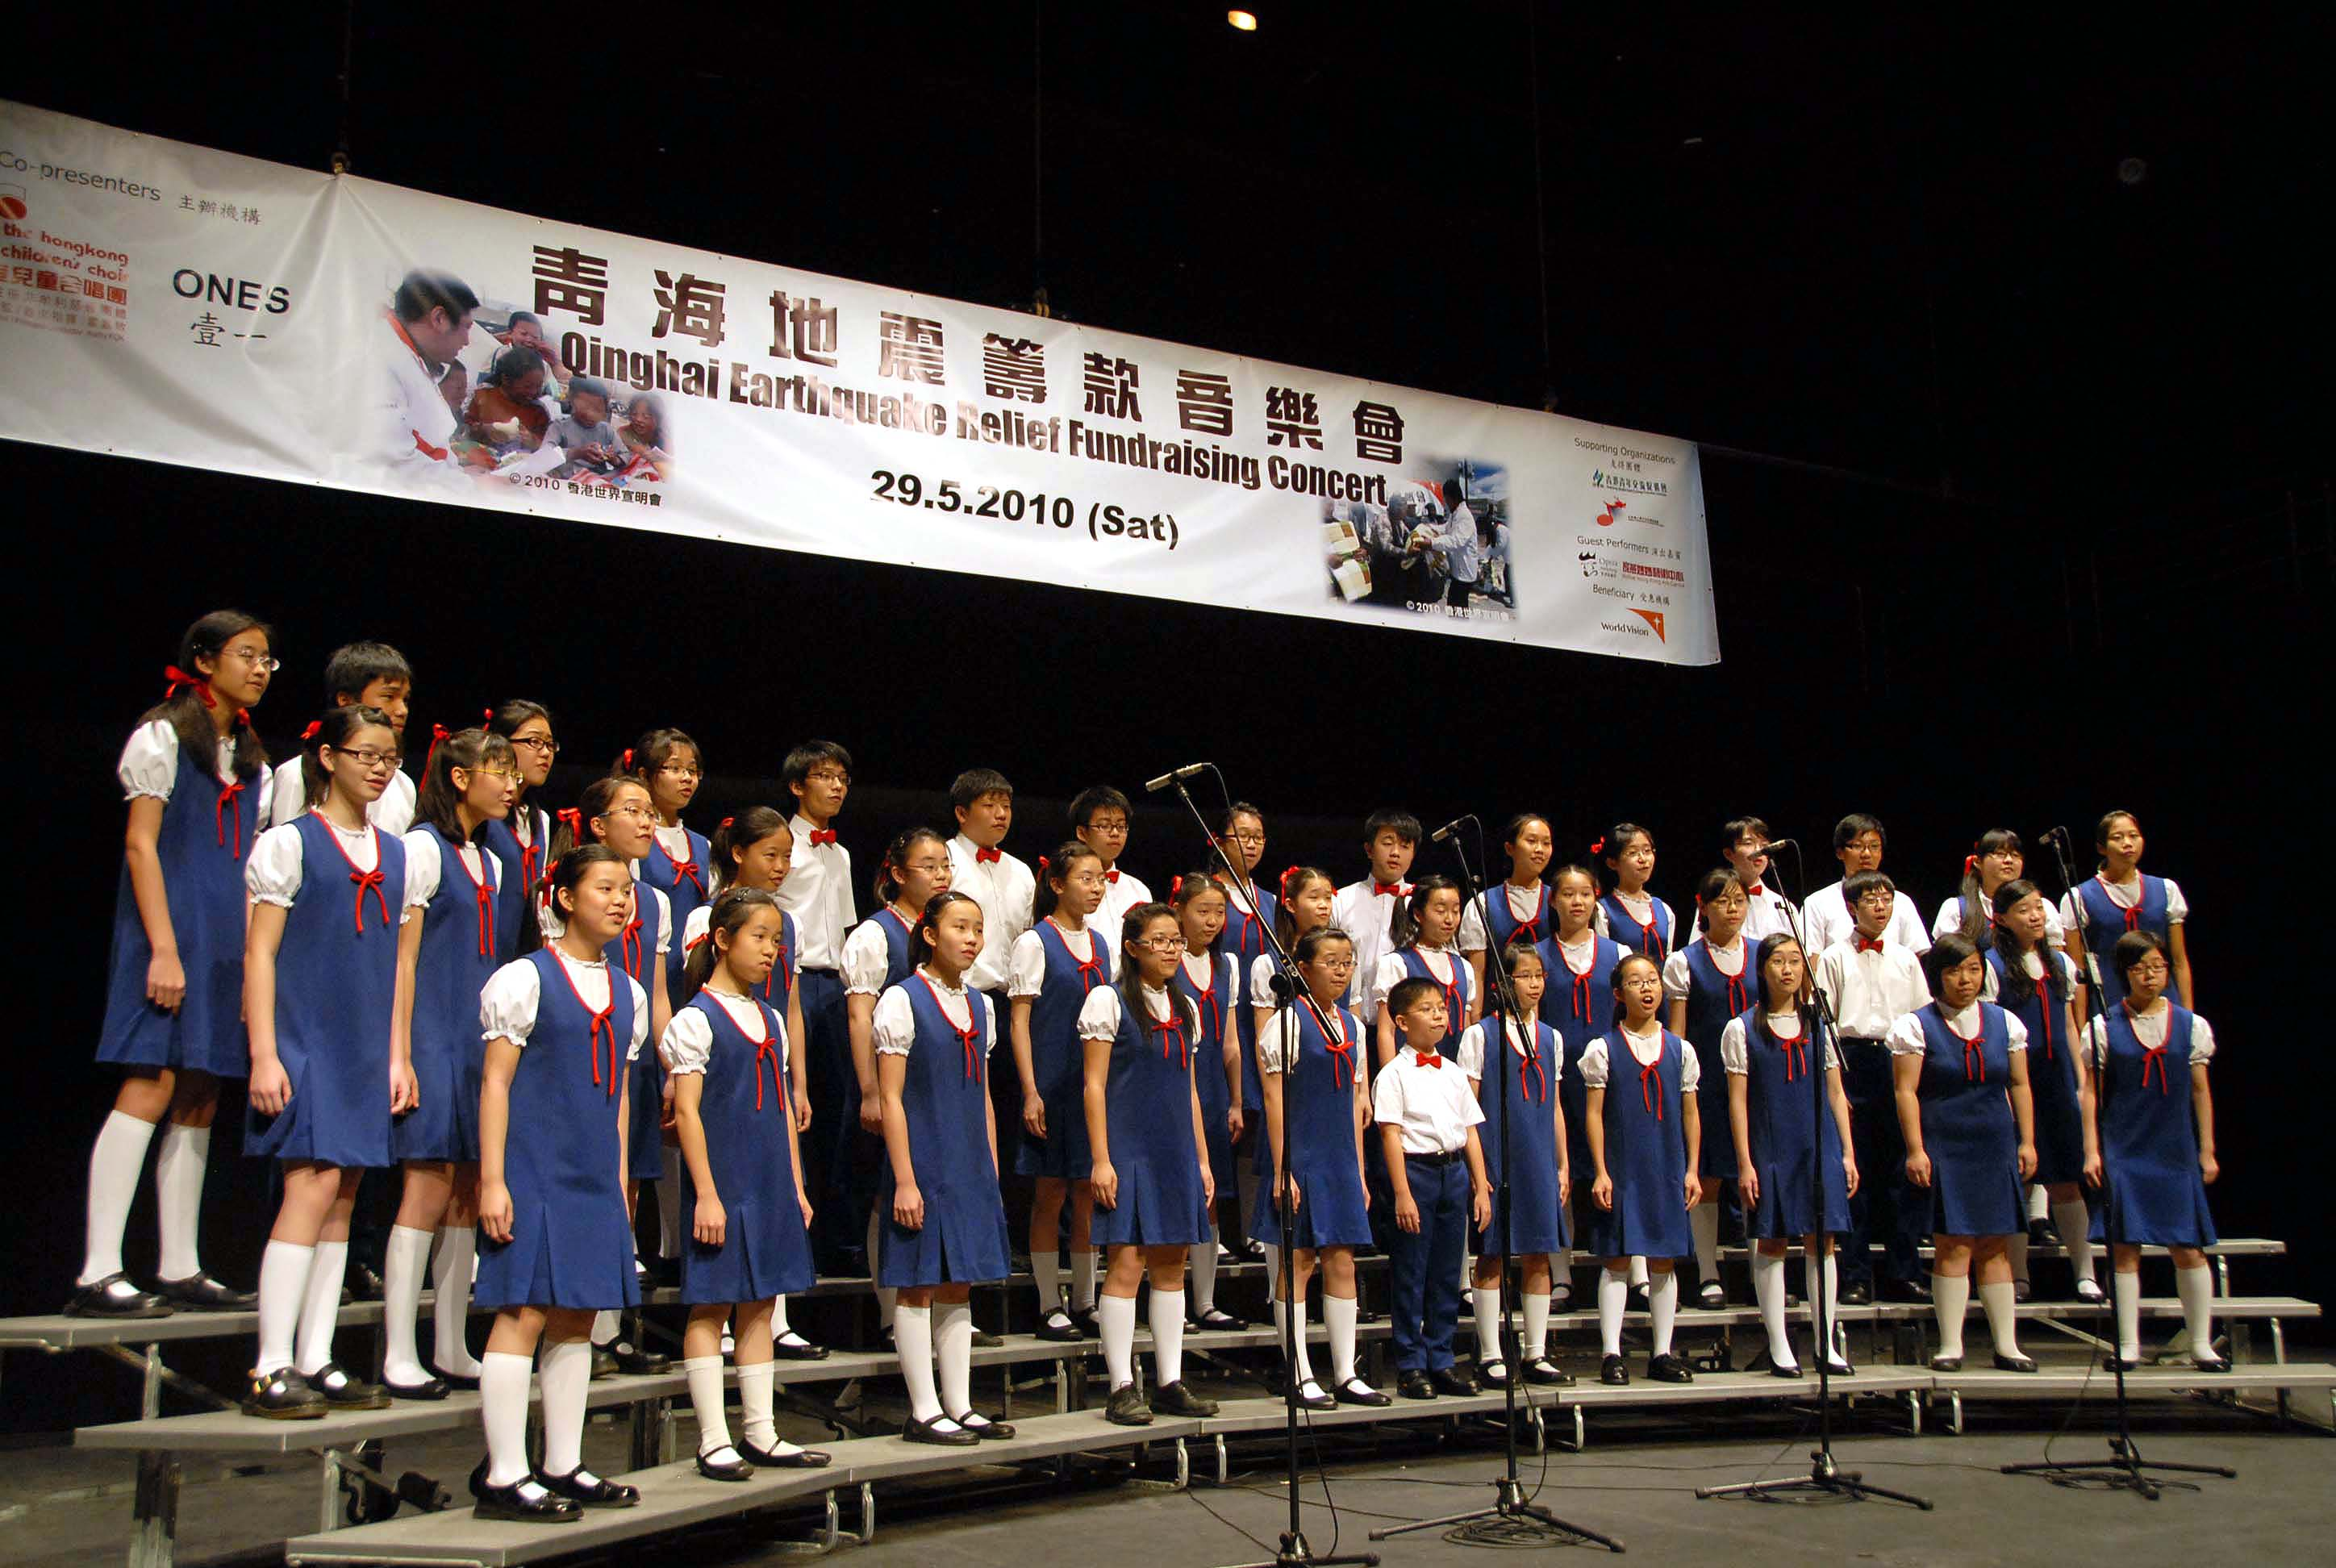 https://www.hkcchoir.org/sites/default/files/charity_2010_qinghai.jpg